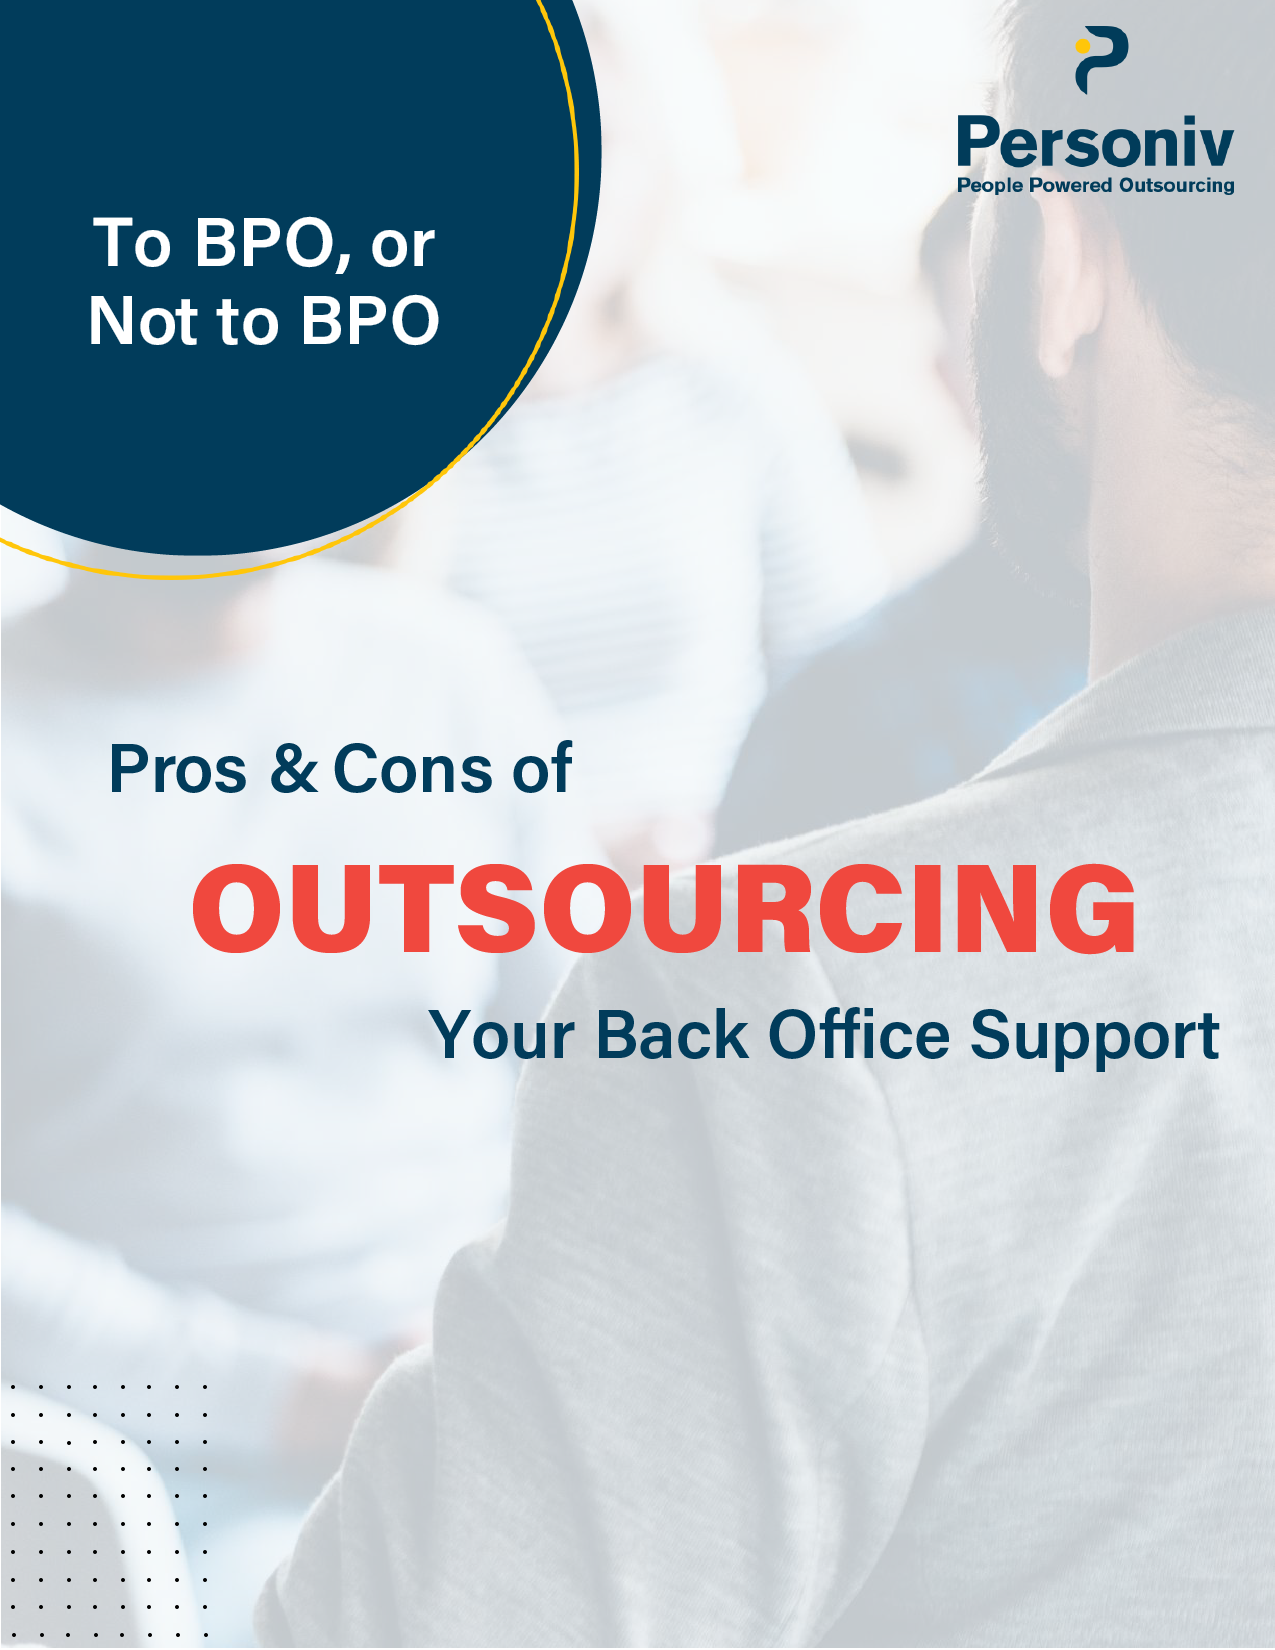 To BPO or Not to BPO - White Paper